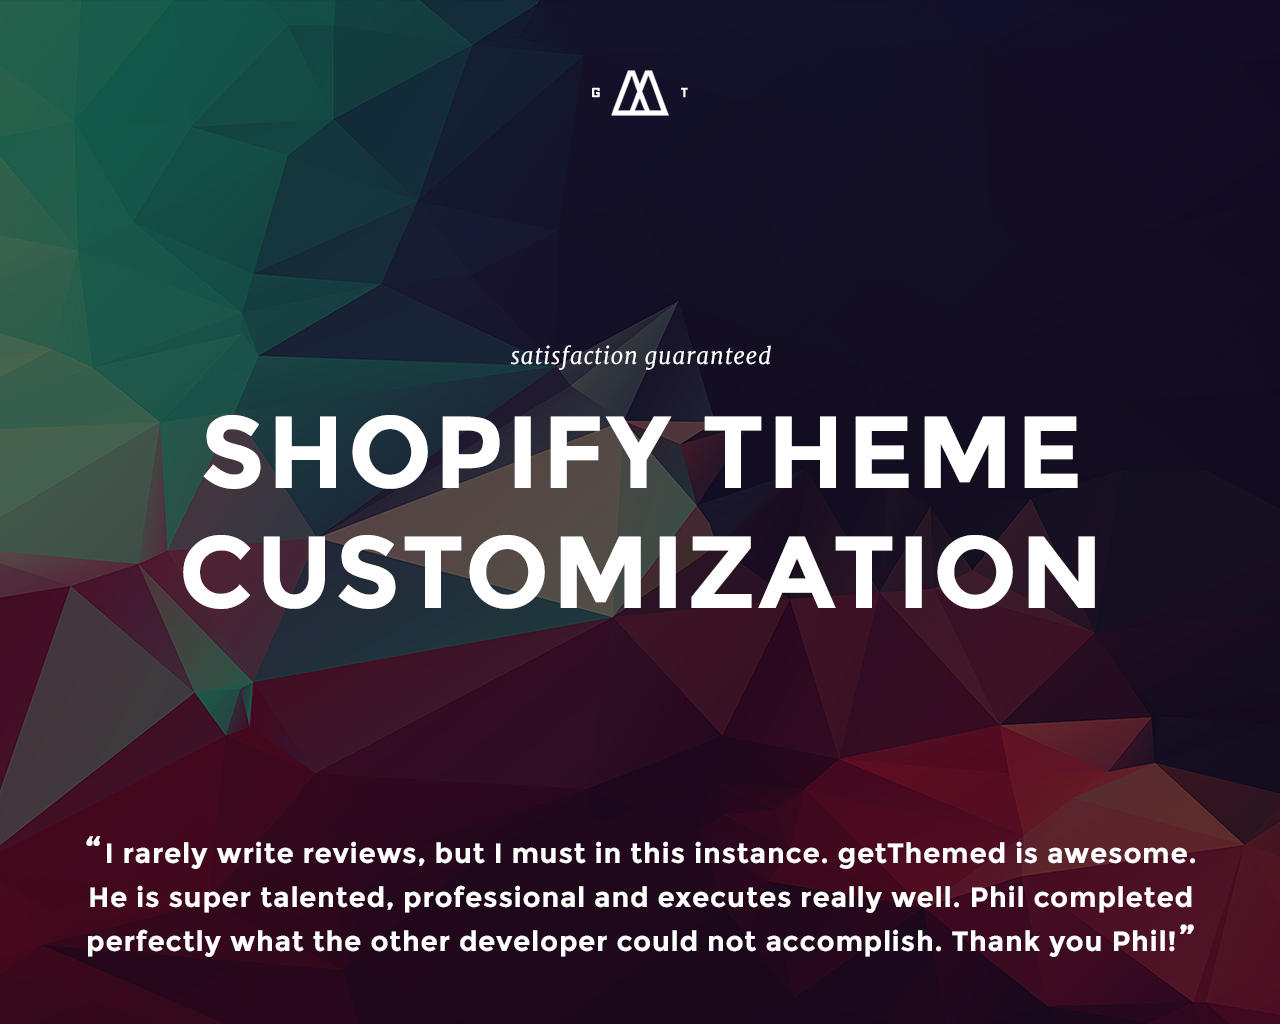 Shopify Theme Customization by getThemed - 83496